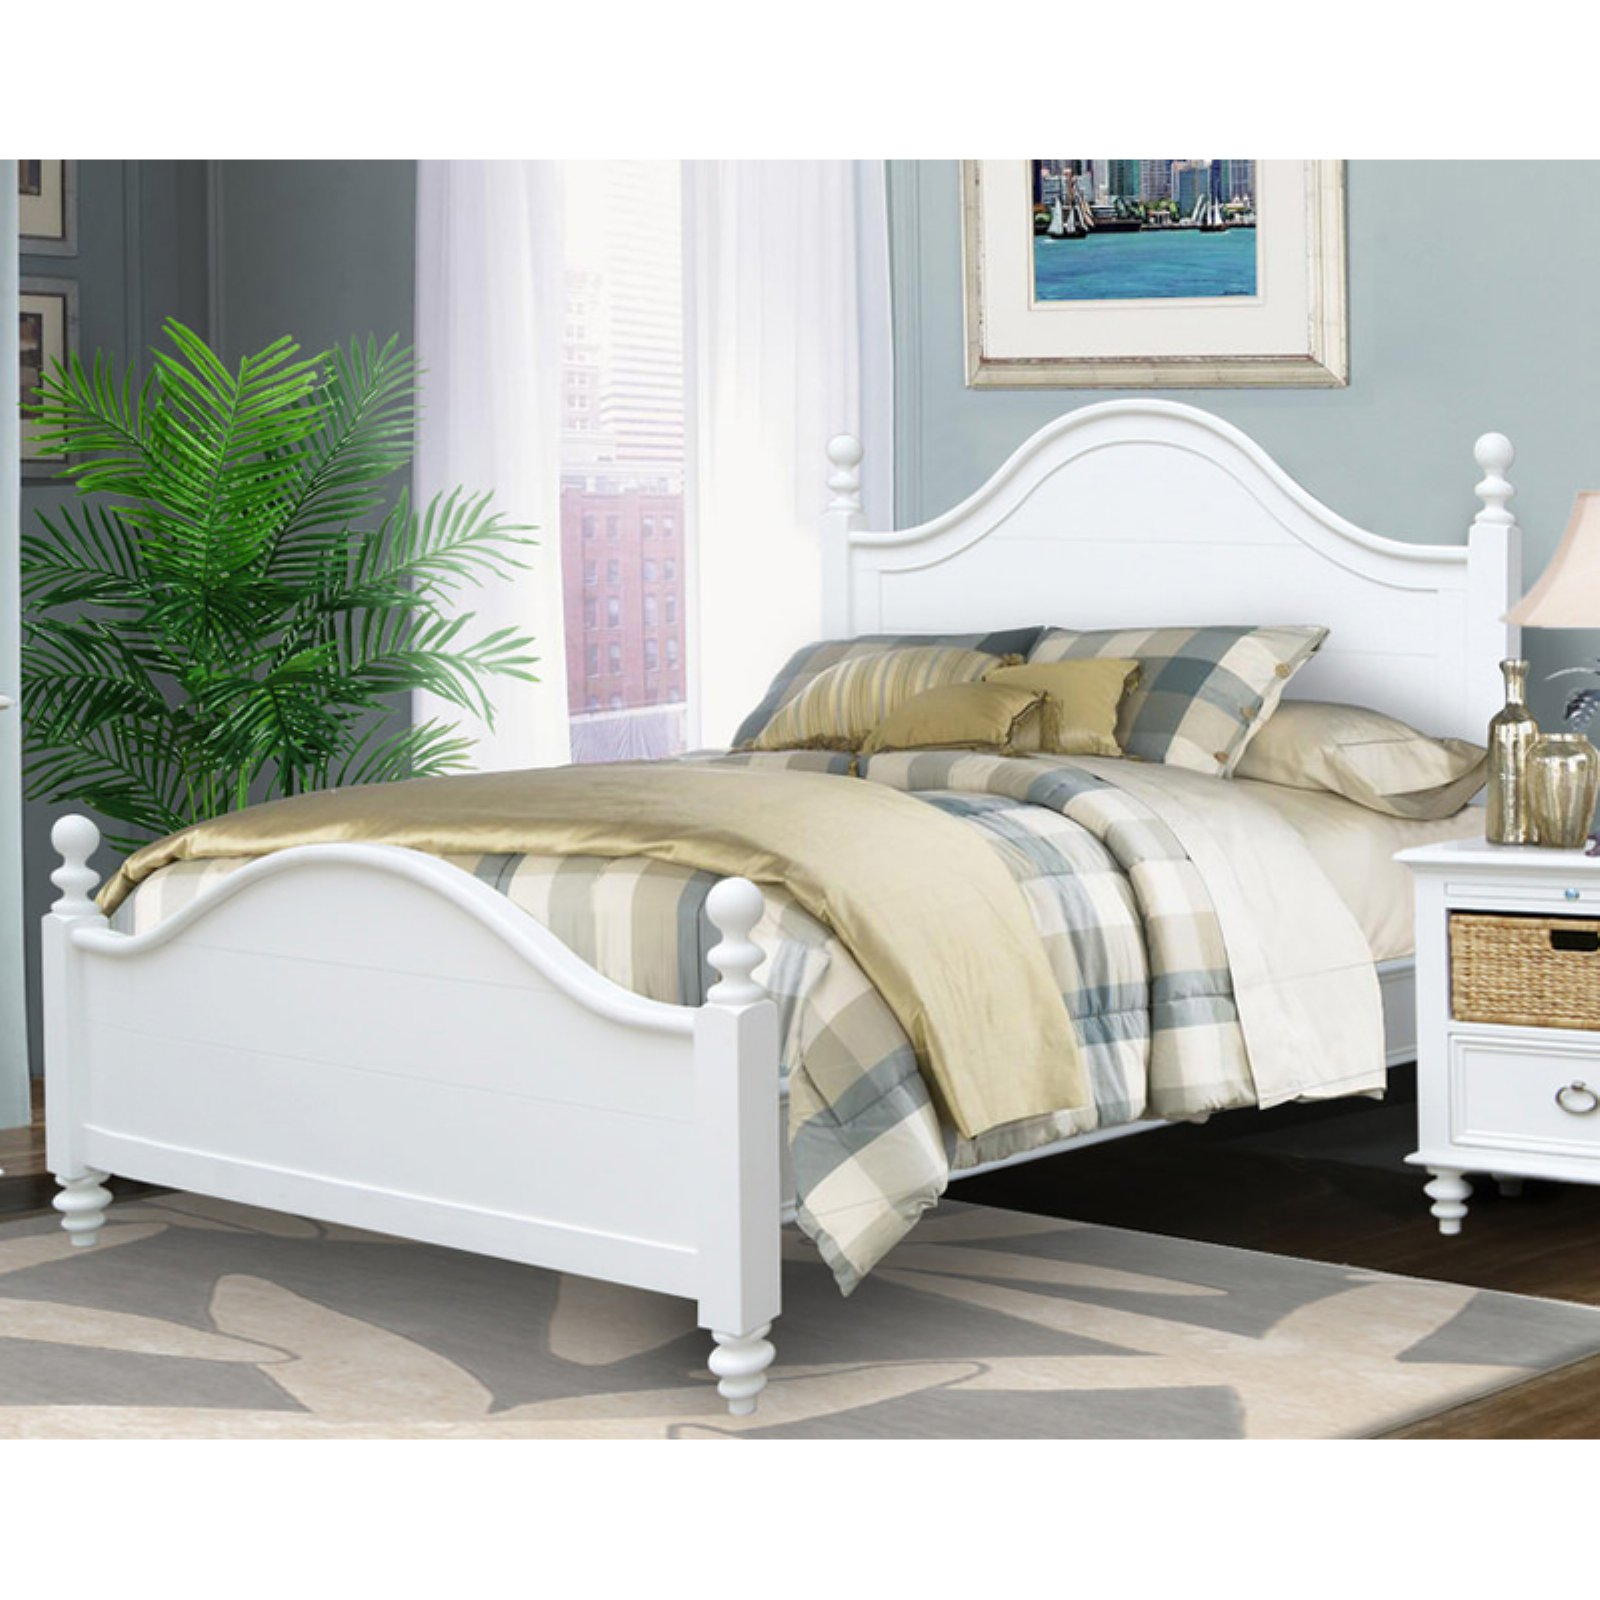 Chelsea Home Furniture Amalie Poster Bed